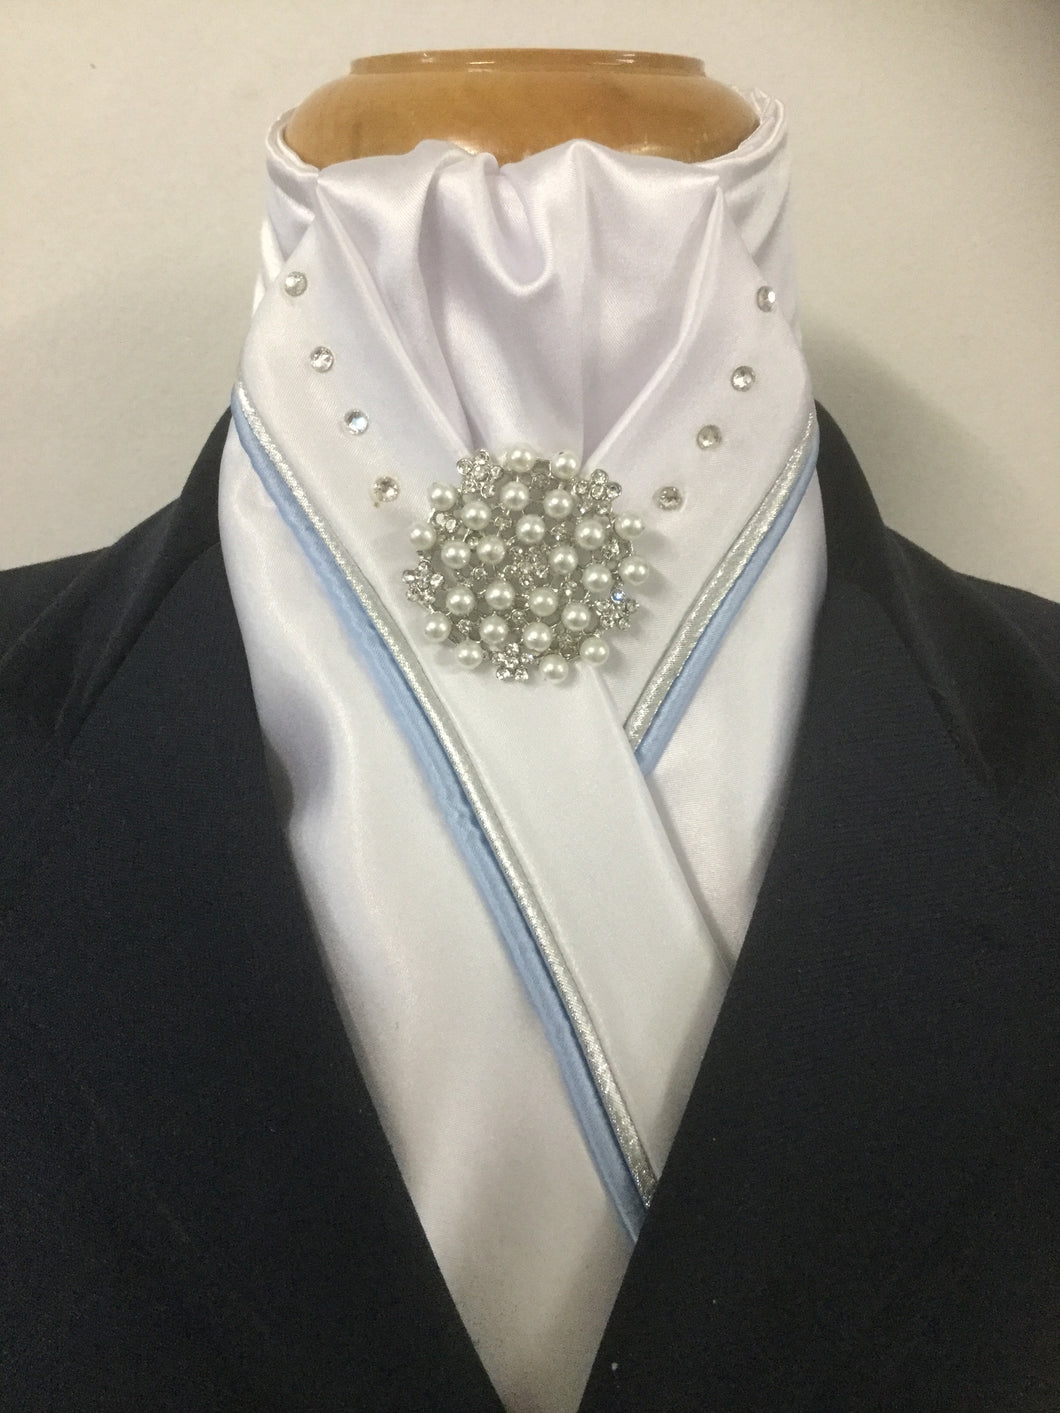 HHD White Custom Stock Tie Double Piping Light Blue & Silver Swarovski Elements